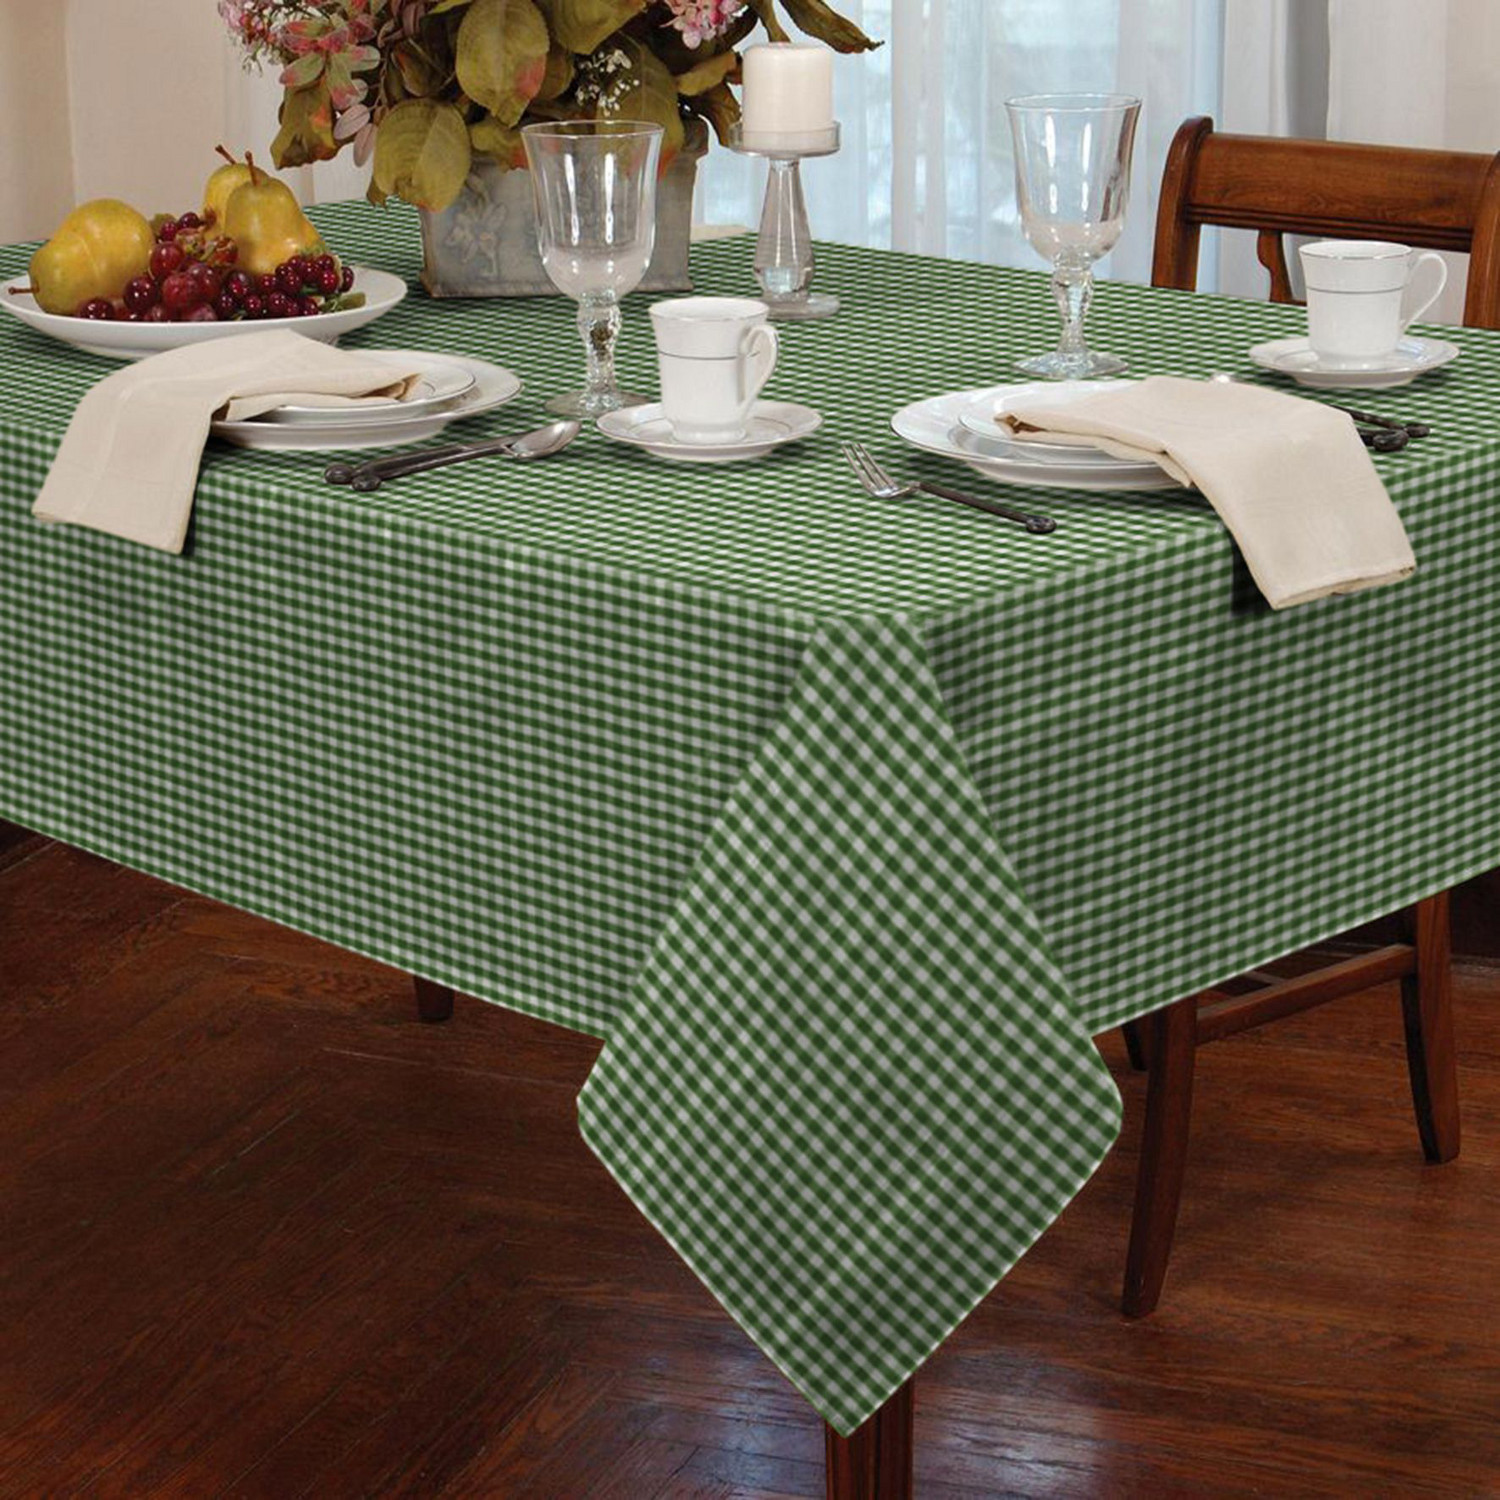 Charmant Garden Picnic Gingham Check Tablecloth Dining Room Table